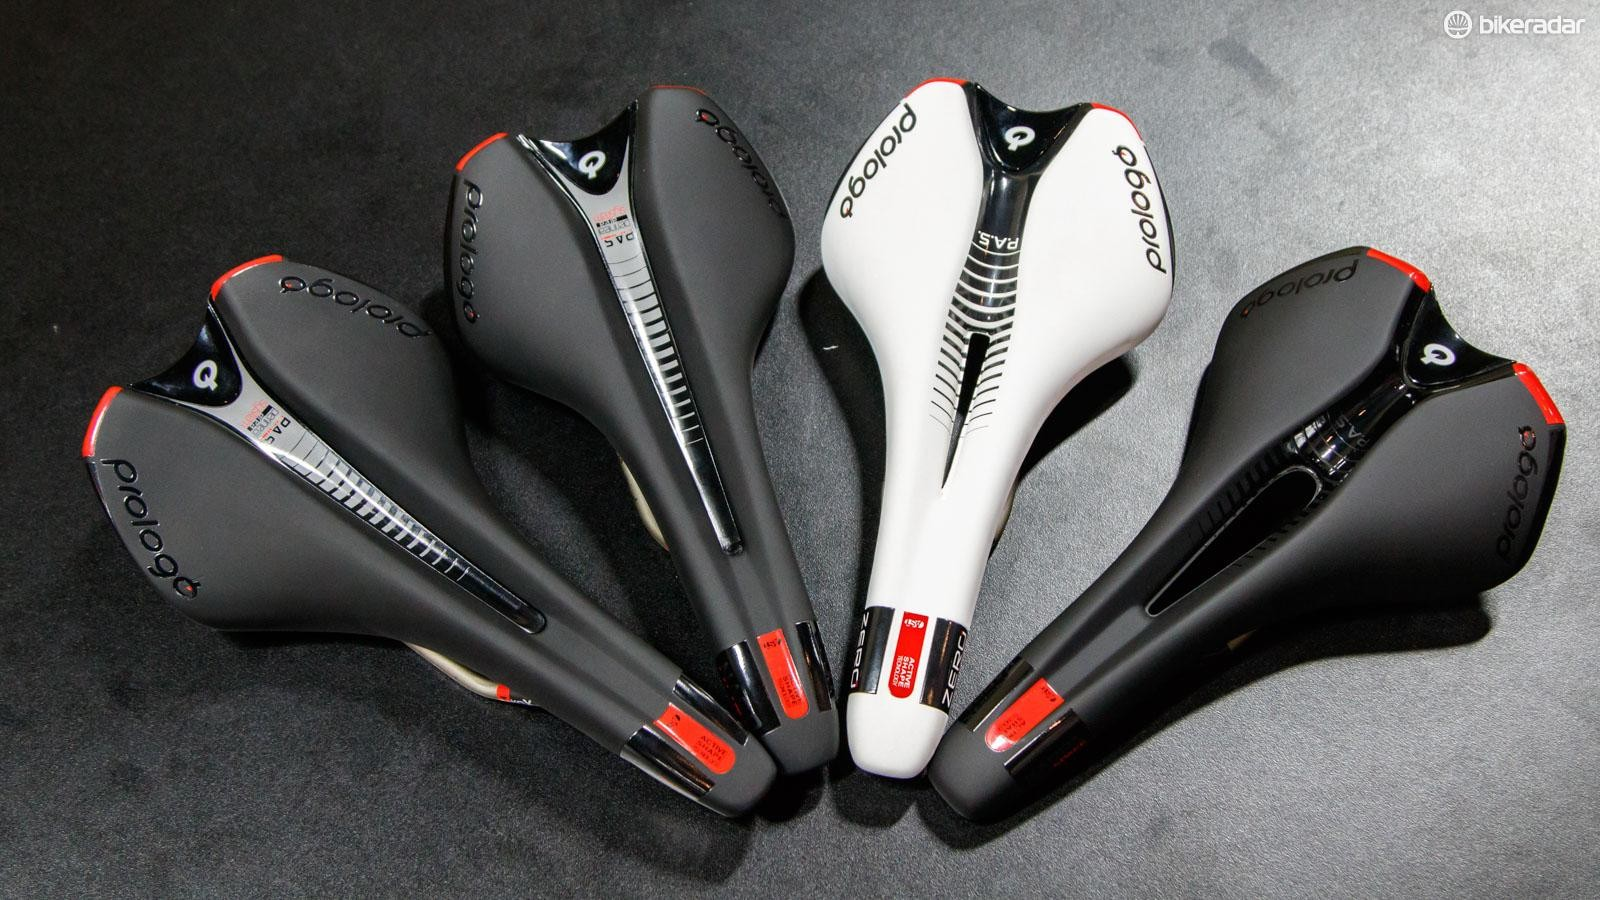 Prologo's new 'SPACE' saddle range is pitched as a 'uni-sex' option for those seeking a wider, more comfortable perch